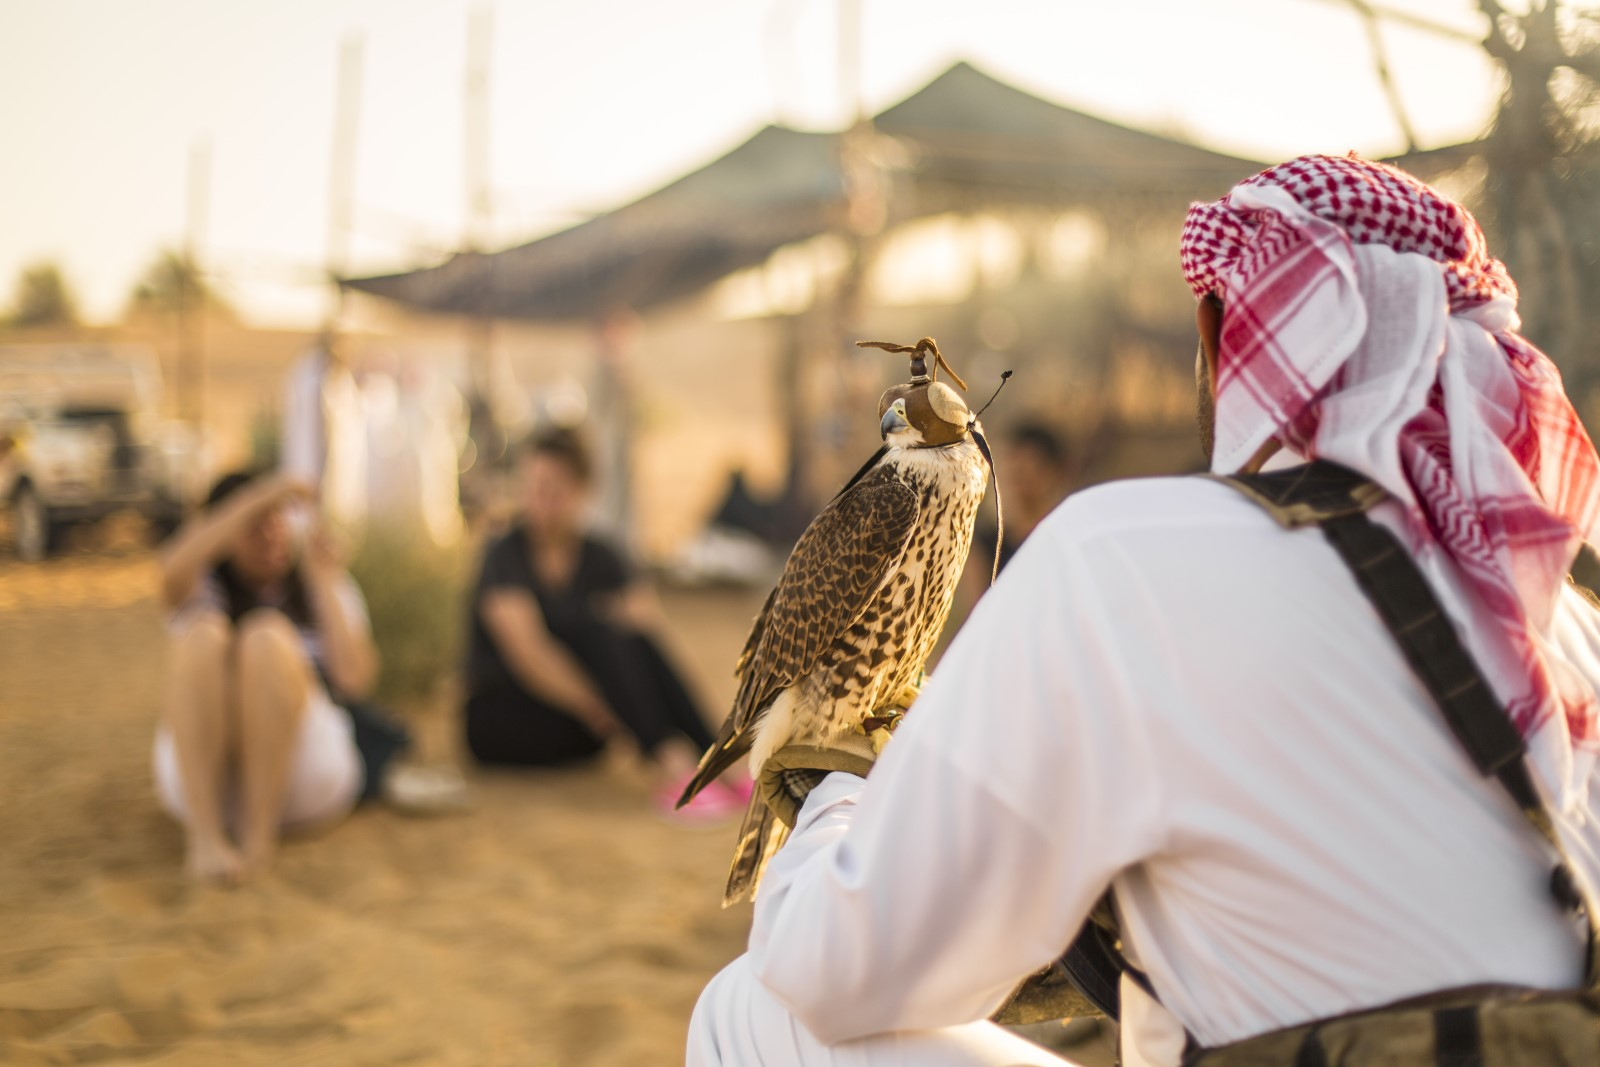 Ethical Falcon Shows in Dubai